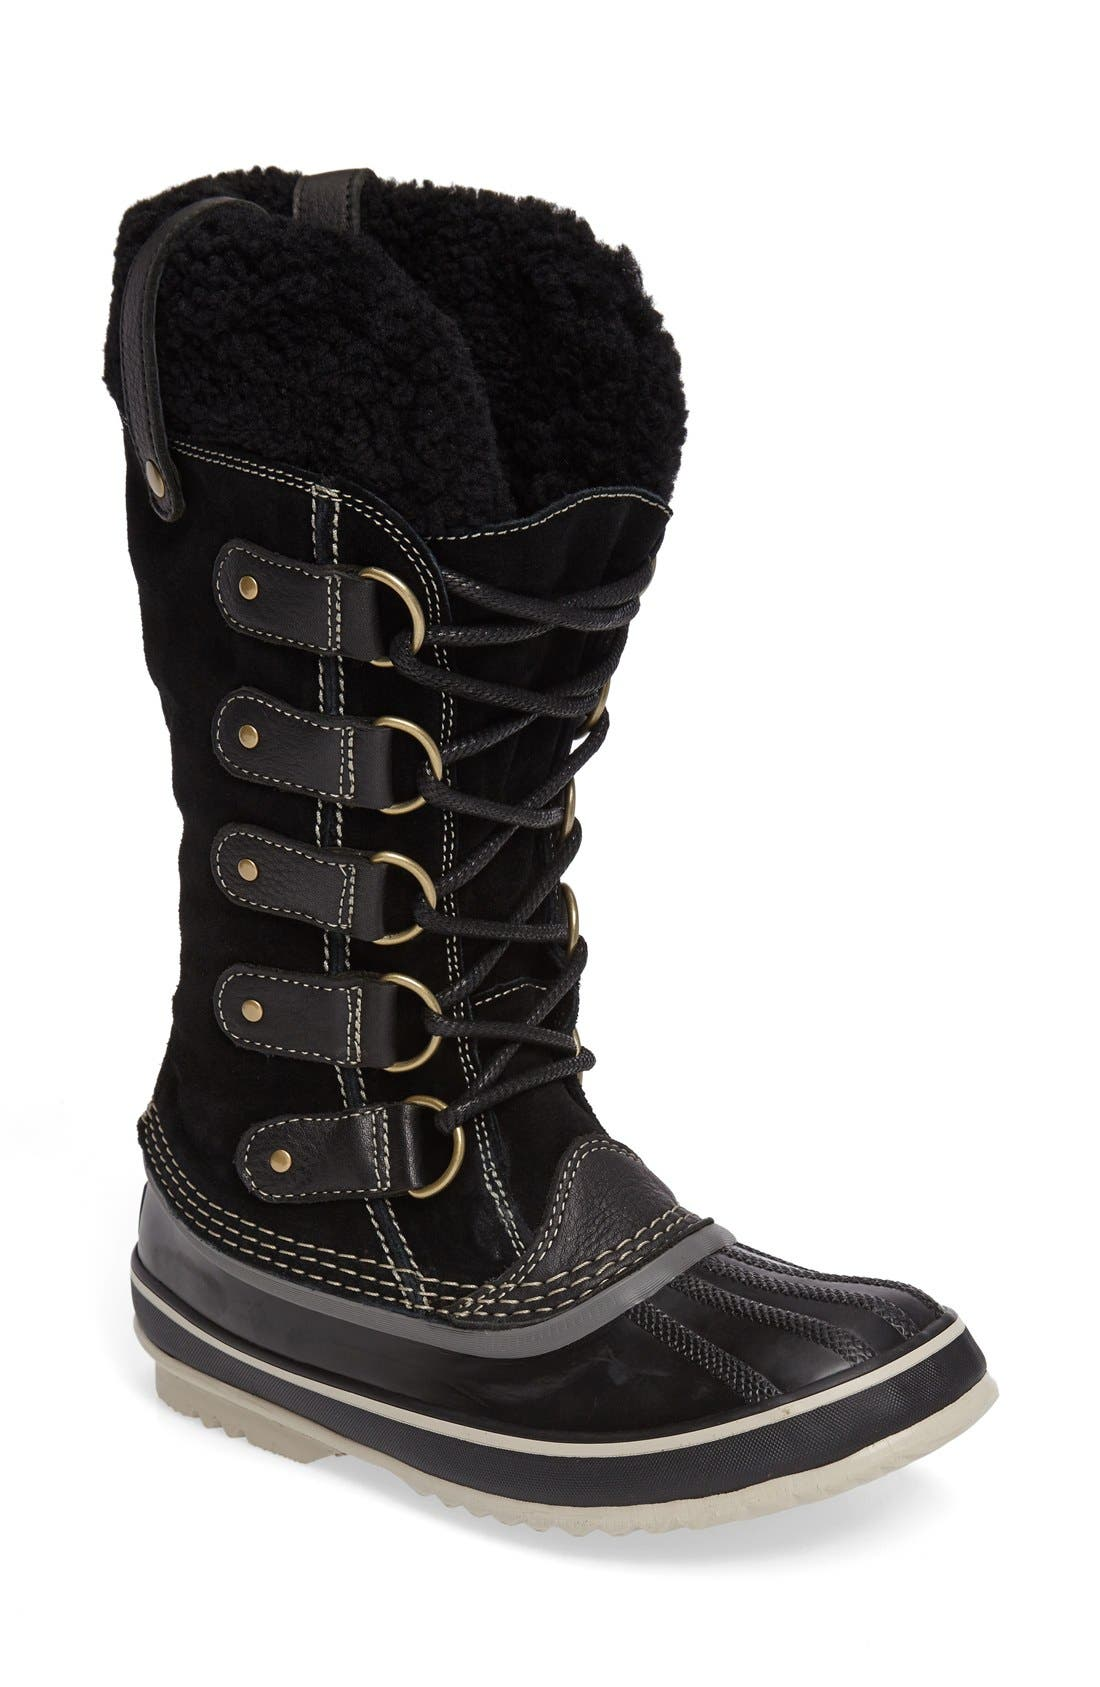 Main Image - SOREL Joan of Arctic Genuine Shearling Waterproof Boot (Women)